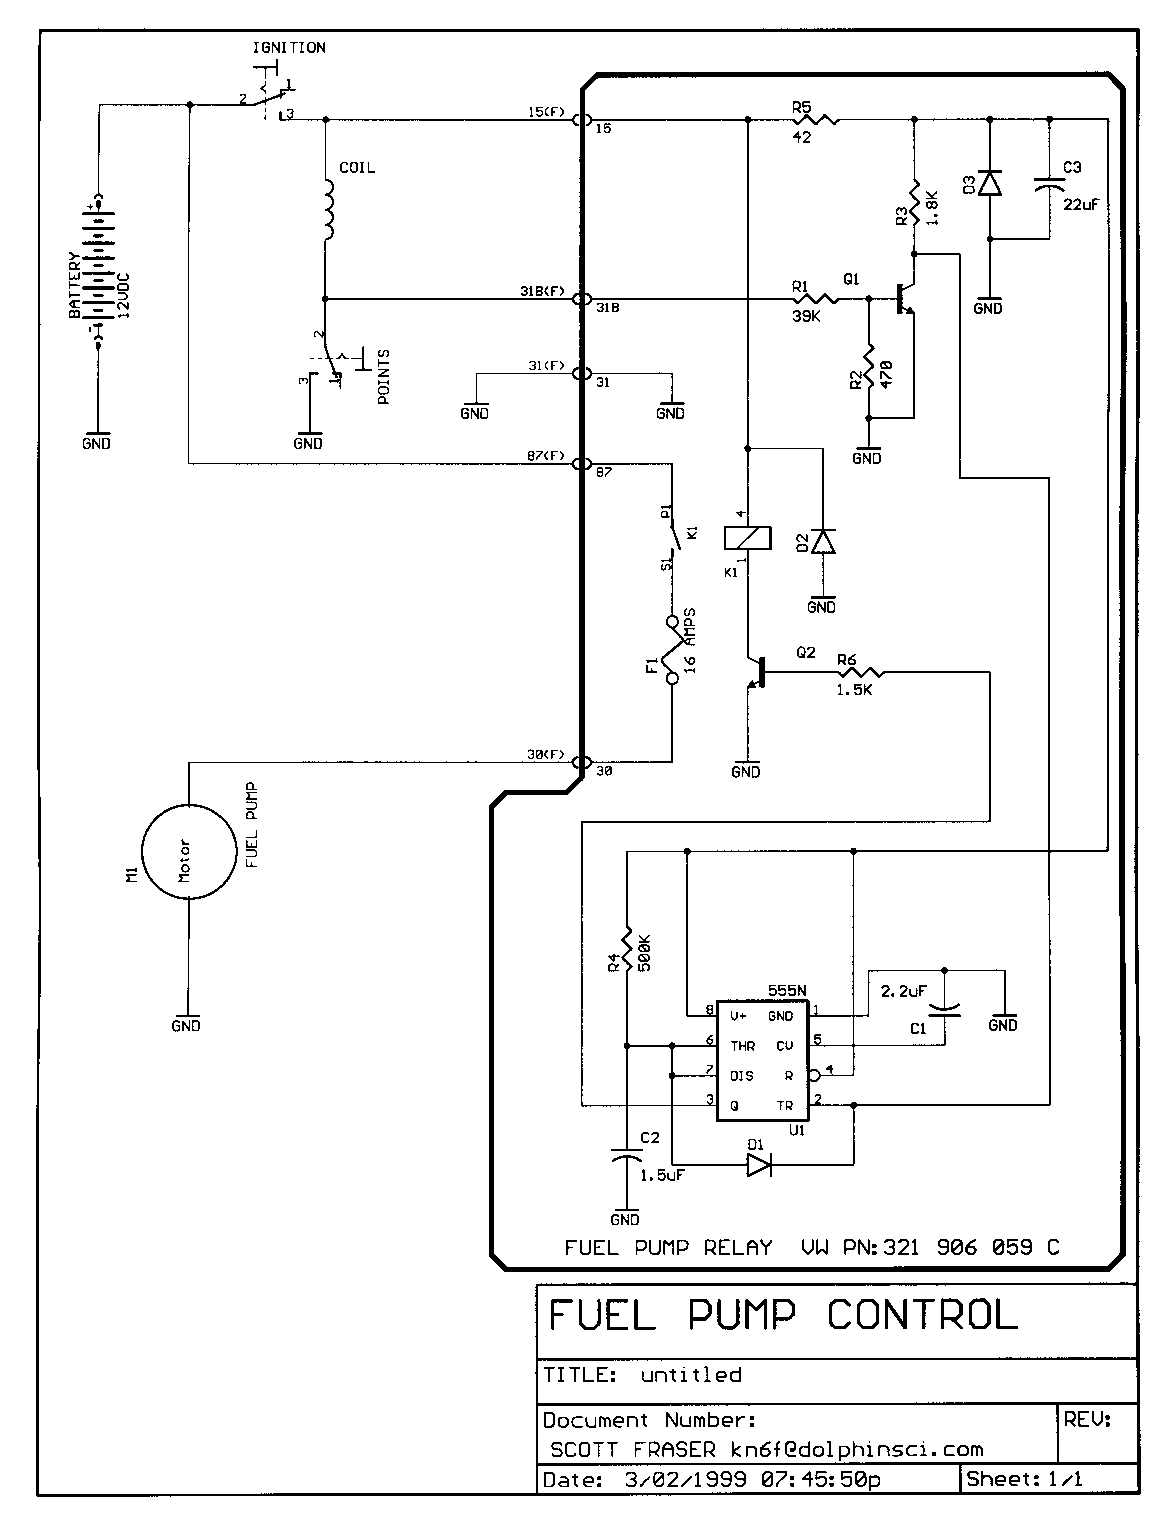 VWfuelPumpRelay thesamba com bay window bus view topic fuel pump wiring fuel pump wiring diagram at n-0.co